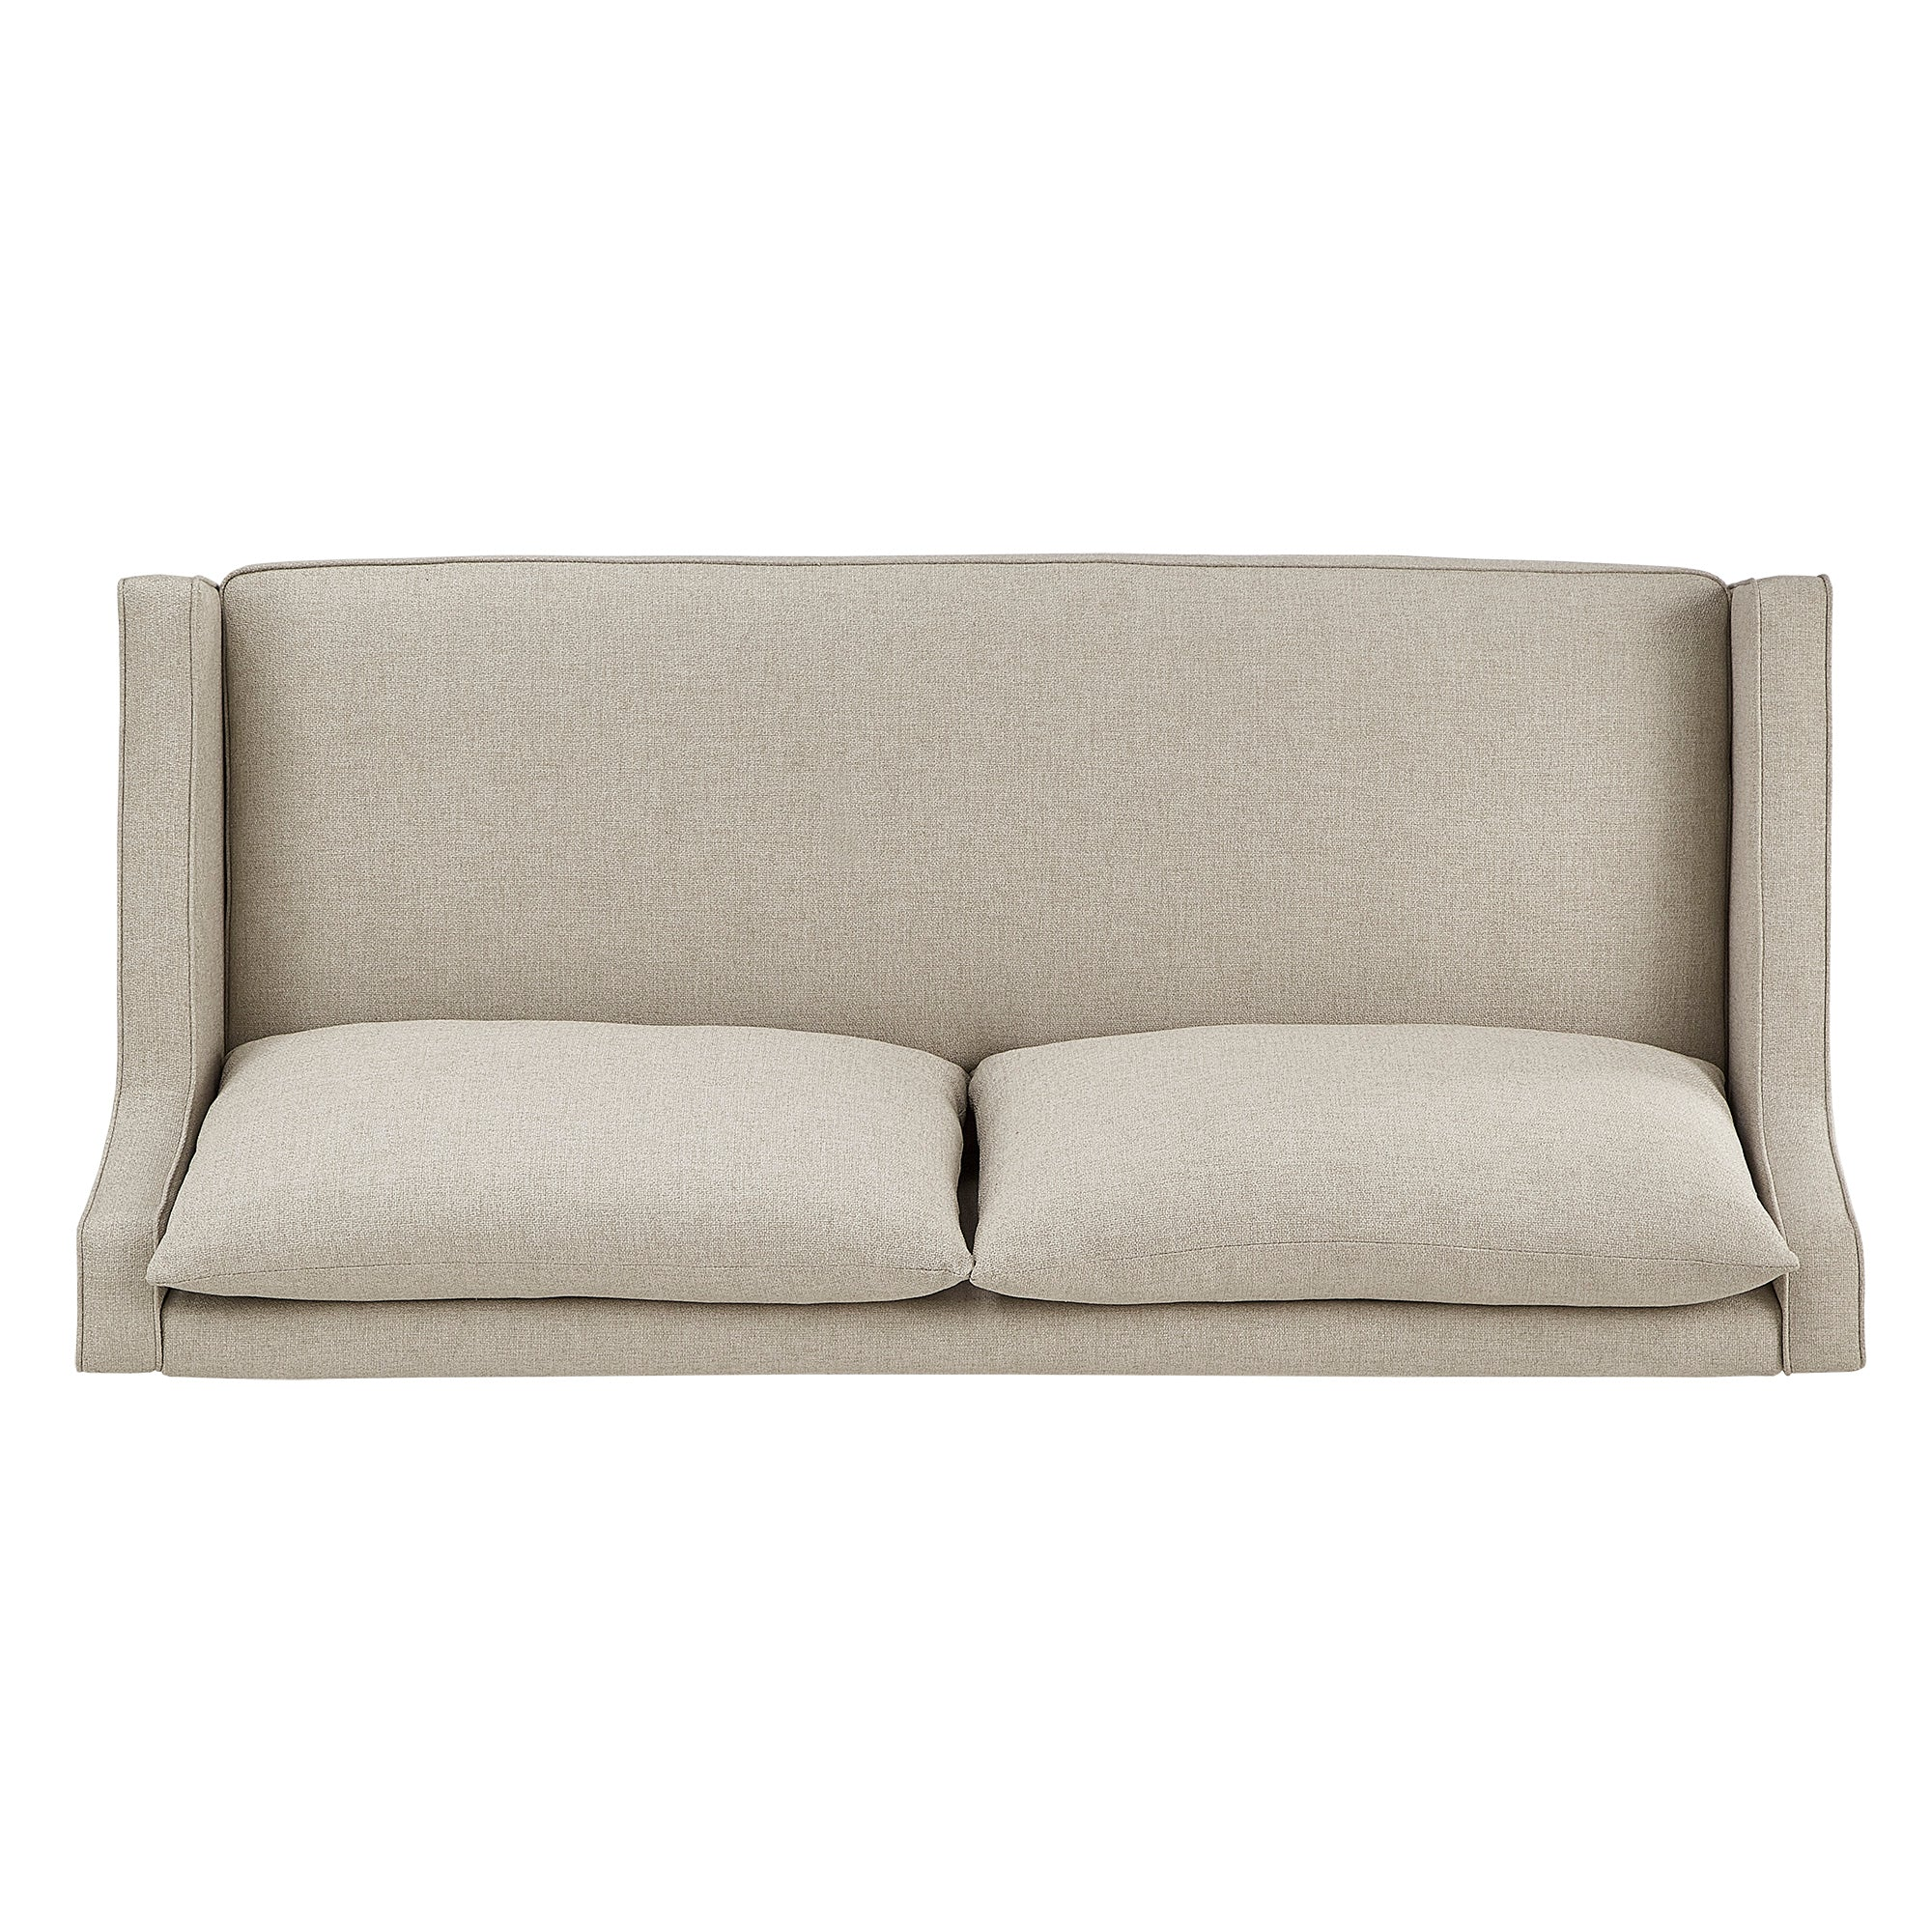 Oatmeal Tweed Sofa